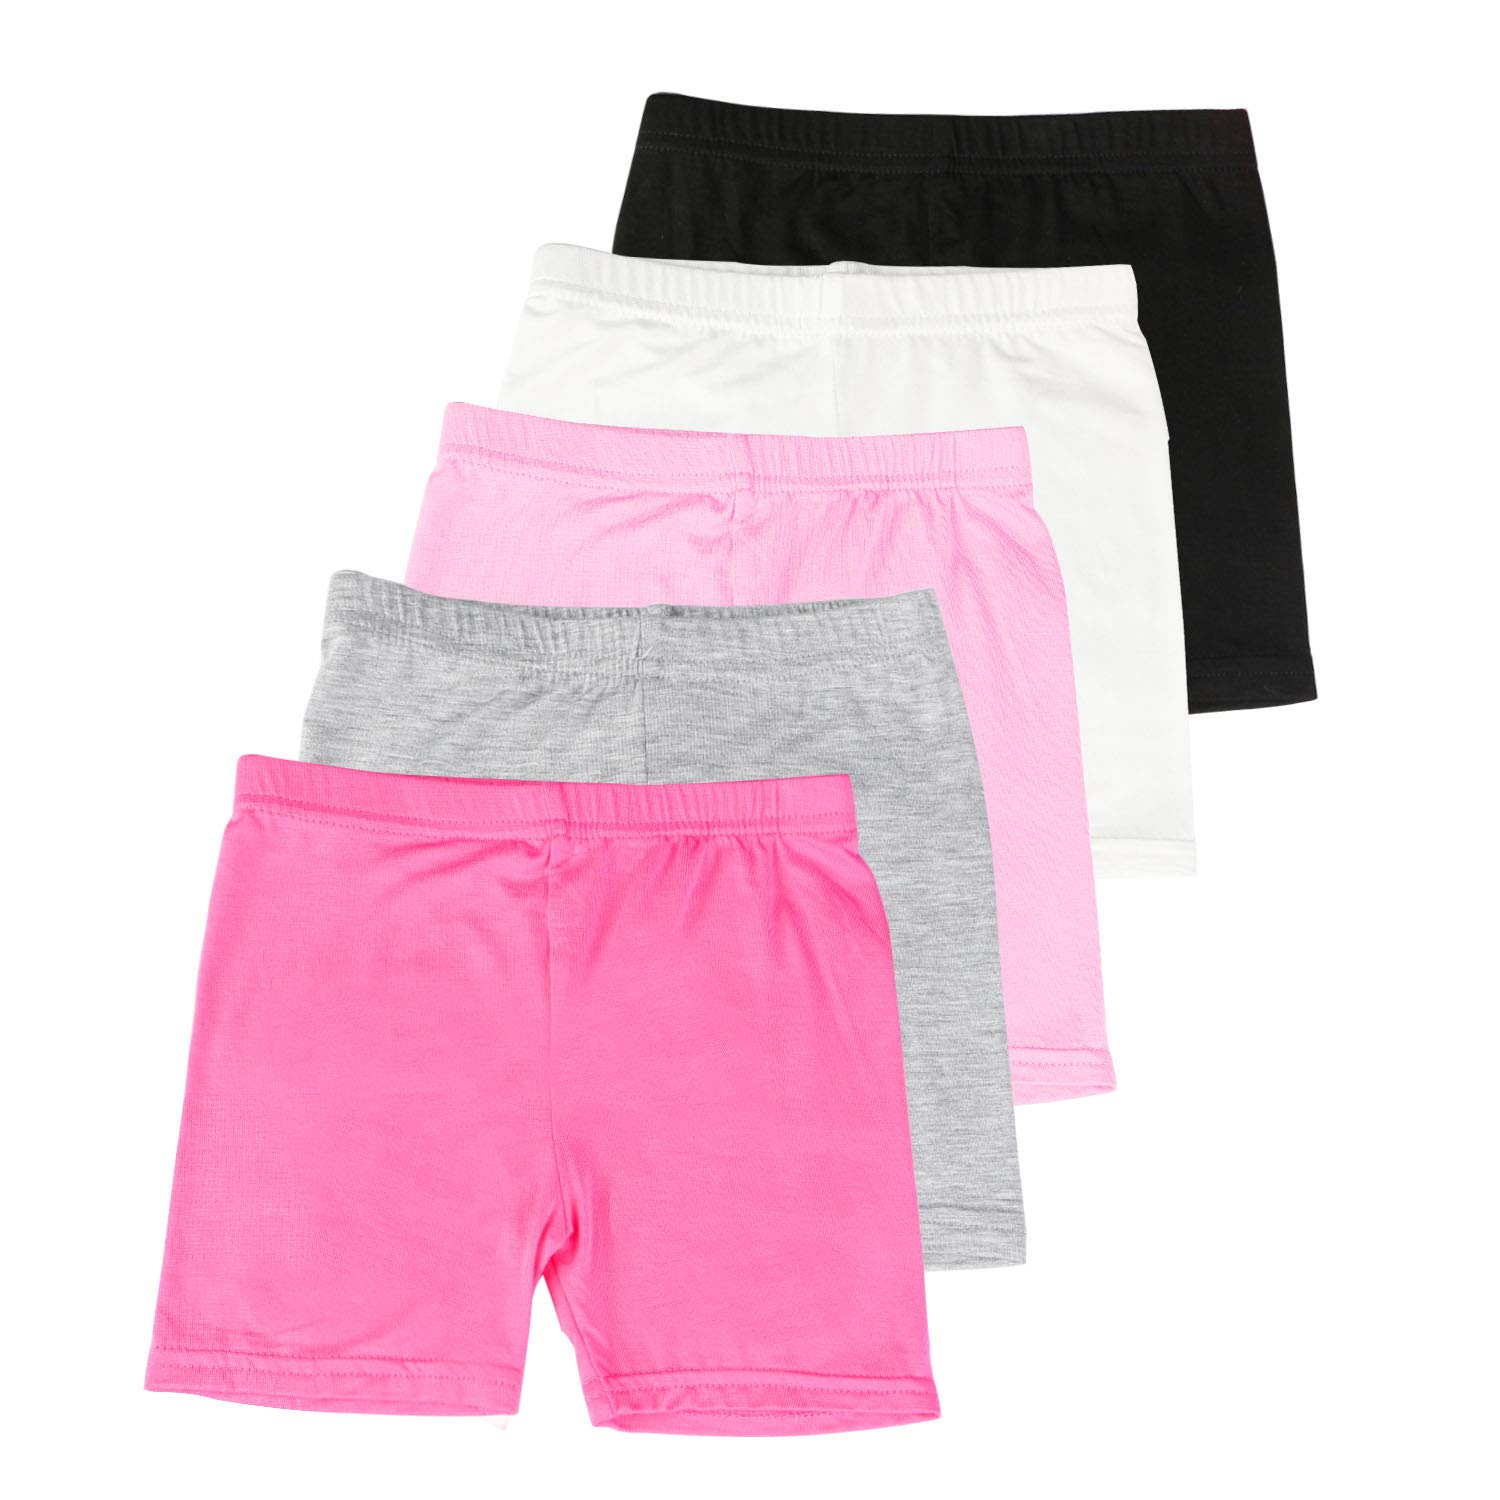 BOOPH Girls Dance Short, 5 Pack Assorted Color Bike Shorts for Girls 4-5 Year Old